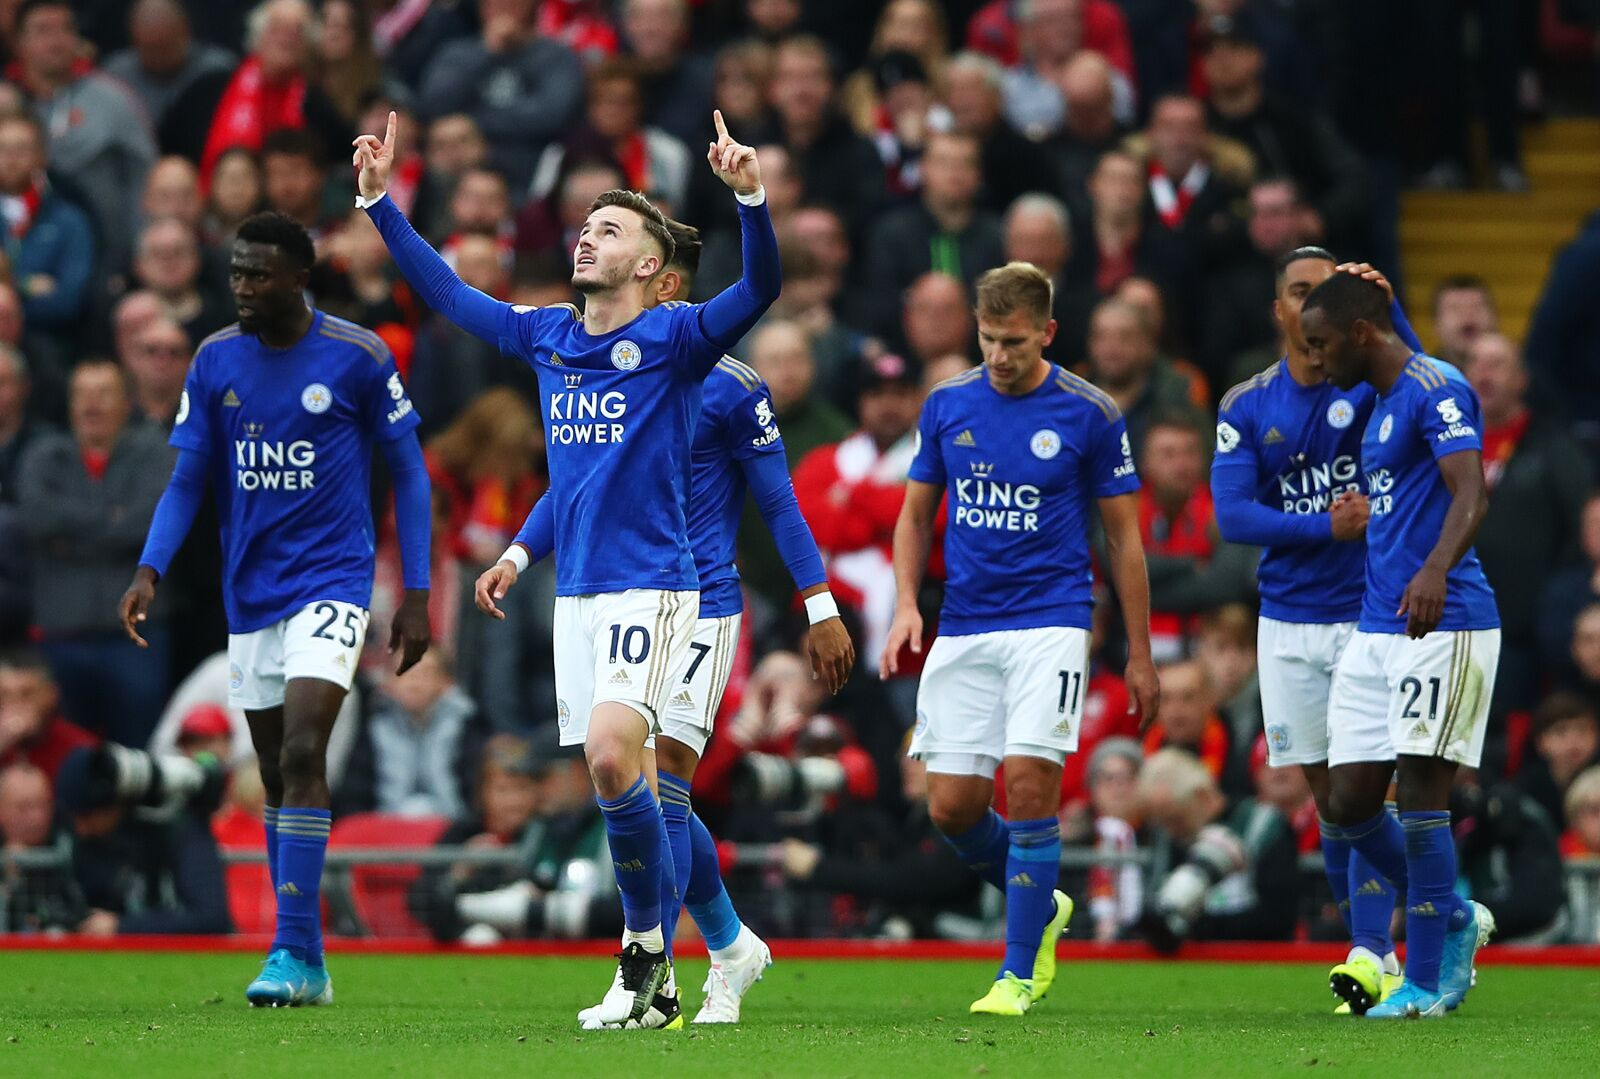 Leicester City picked as the Premier League team of the season